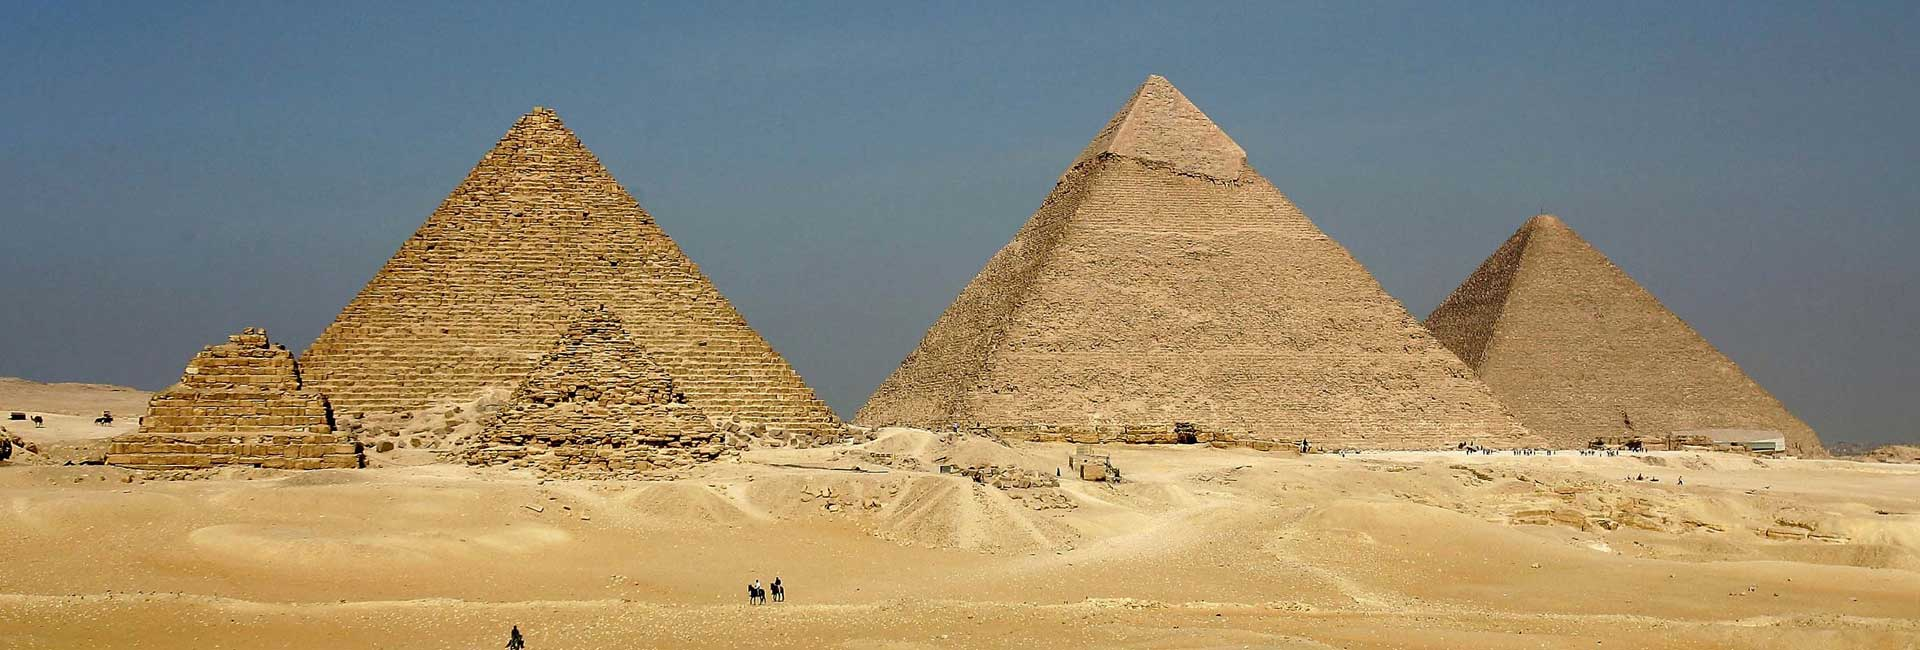 The Pyramids of Giza & The Great Sphinx